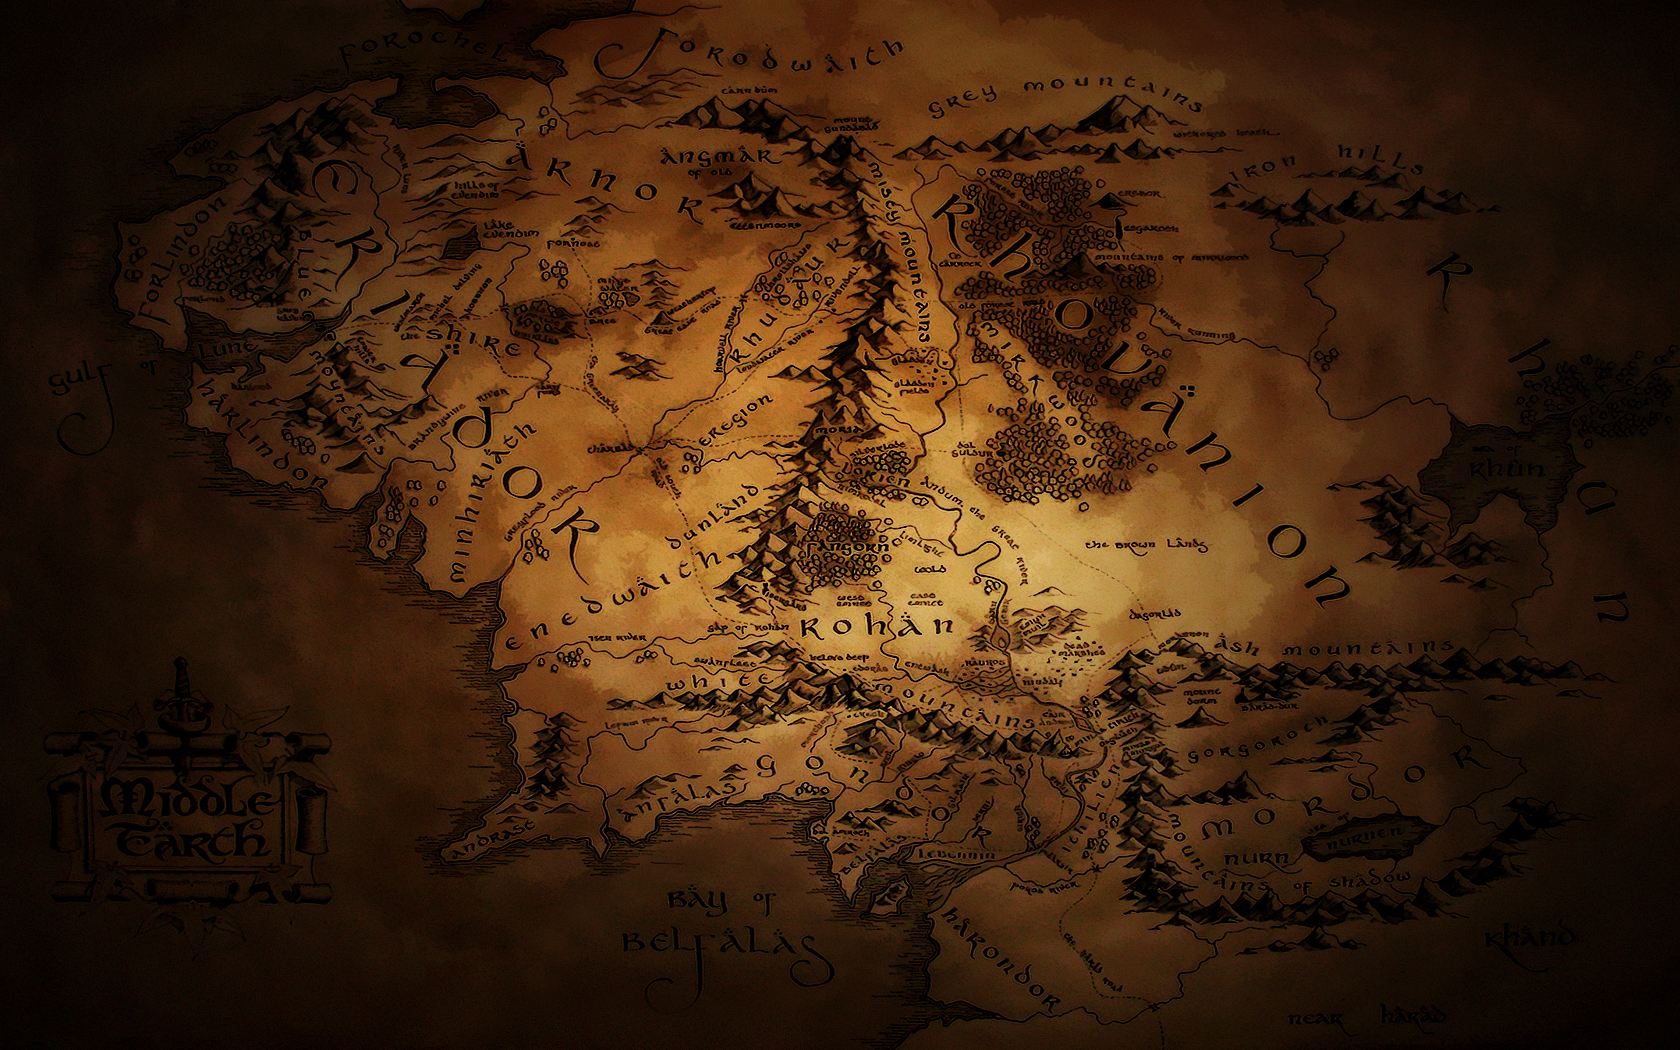 Middle Earth Map Wallpaper 2 by JohnnySlowhand 1680x1050